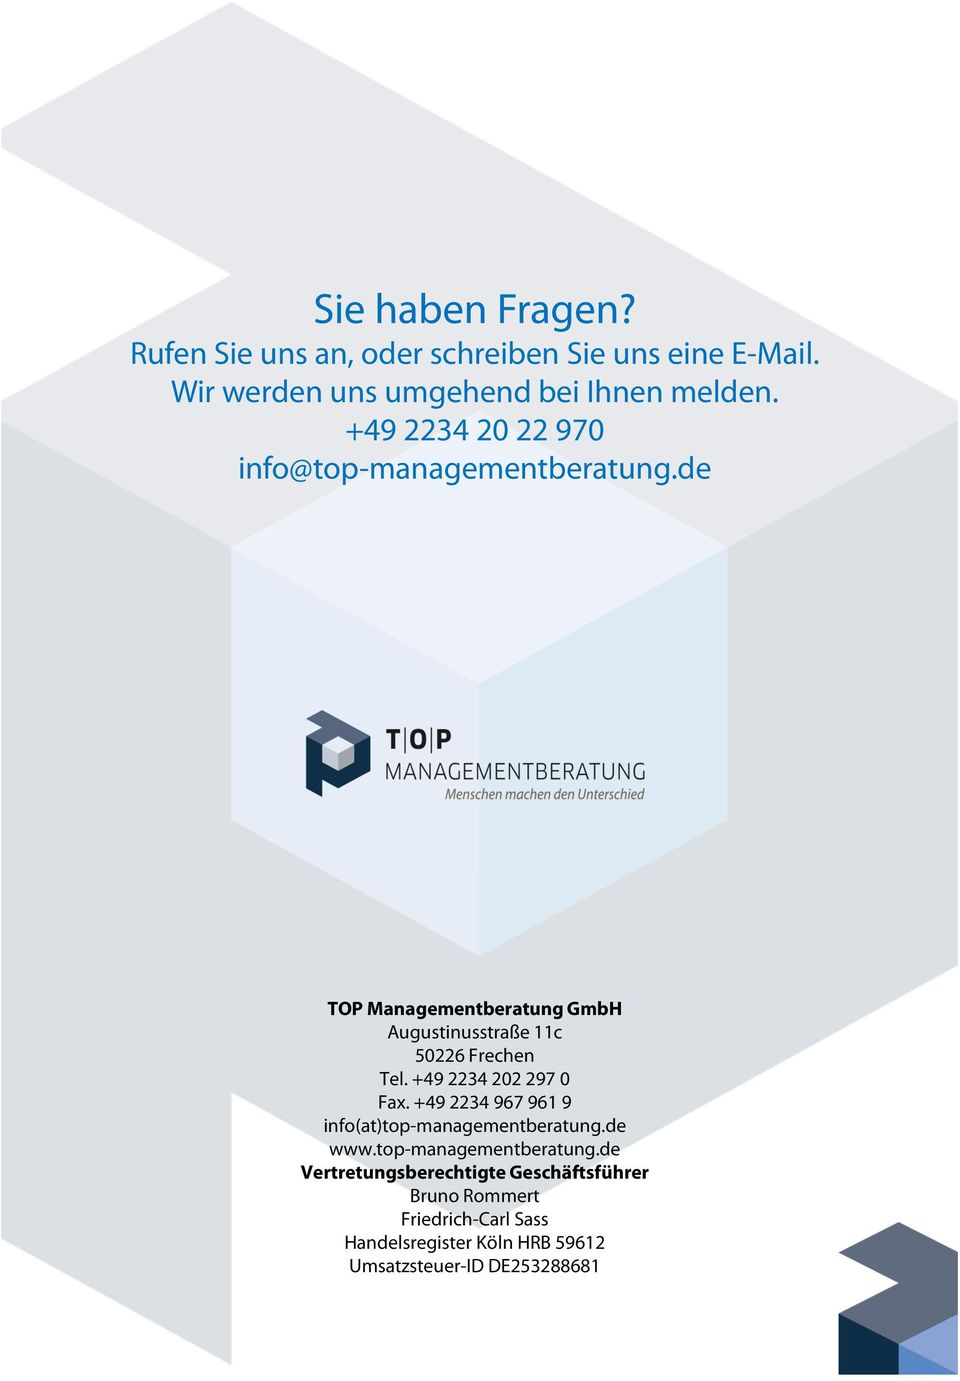 +49 2234 202 297 0 Fax. +49 2234 967 961 9 info(at)top-managementberatung.